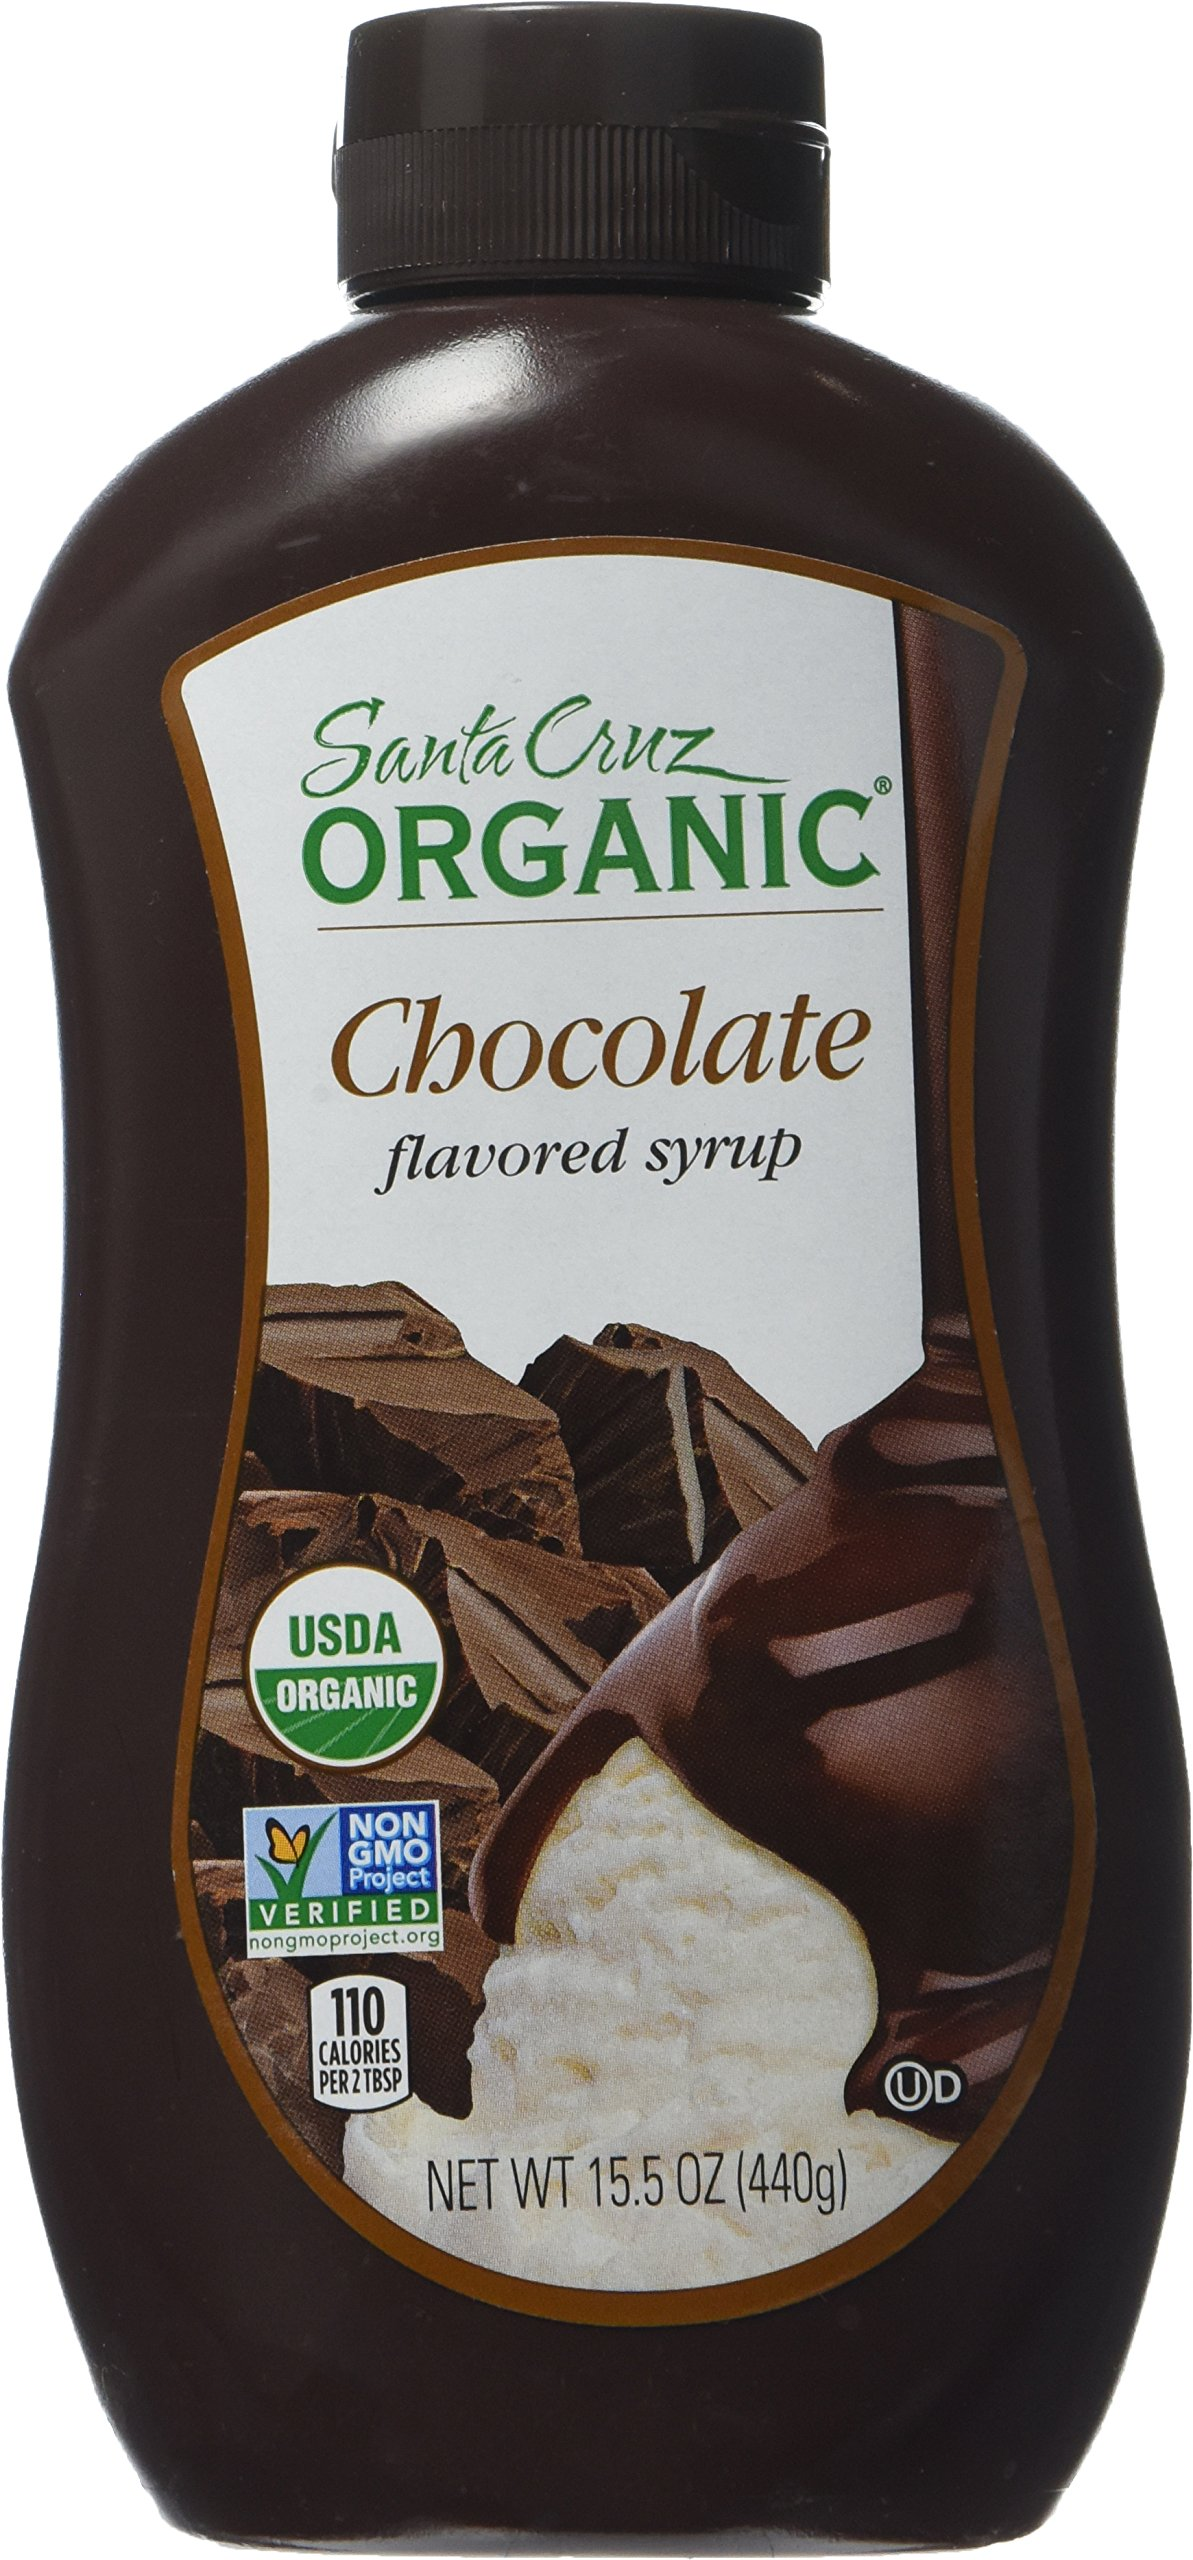 Santa Cruz Organic Chocolate Flavored Syrup, 15.5 Ounce